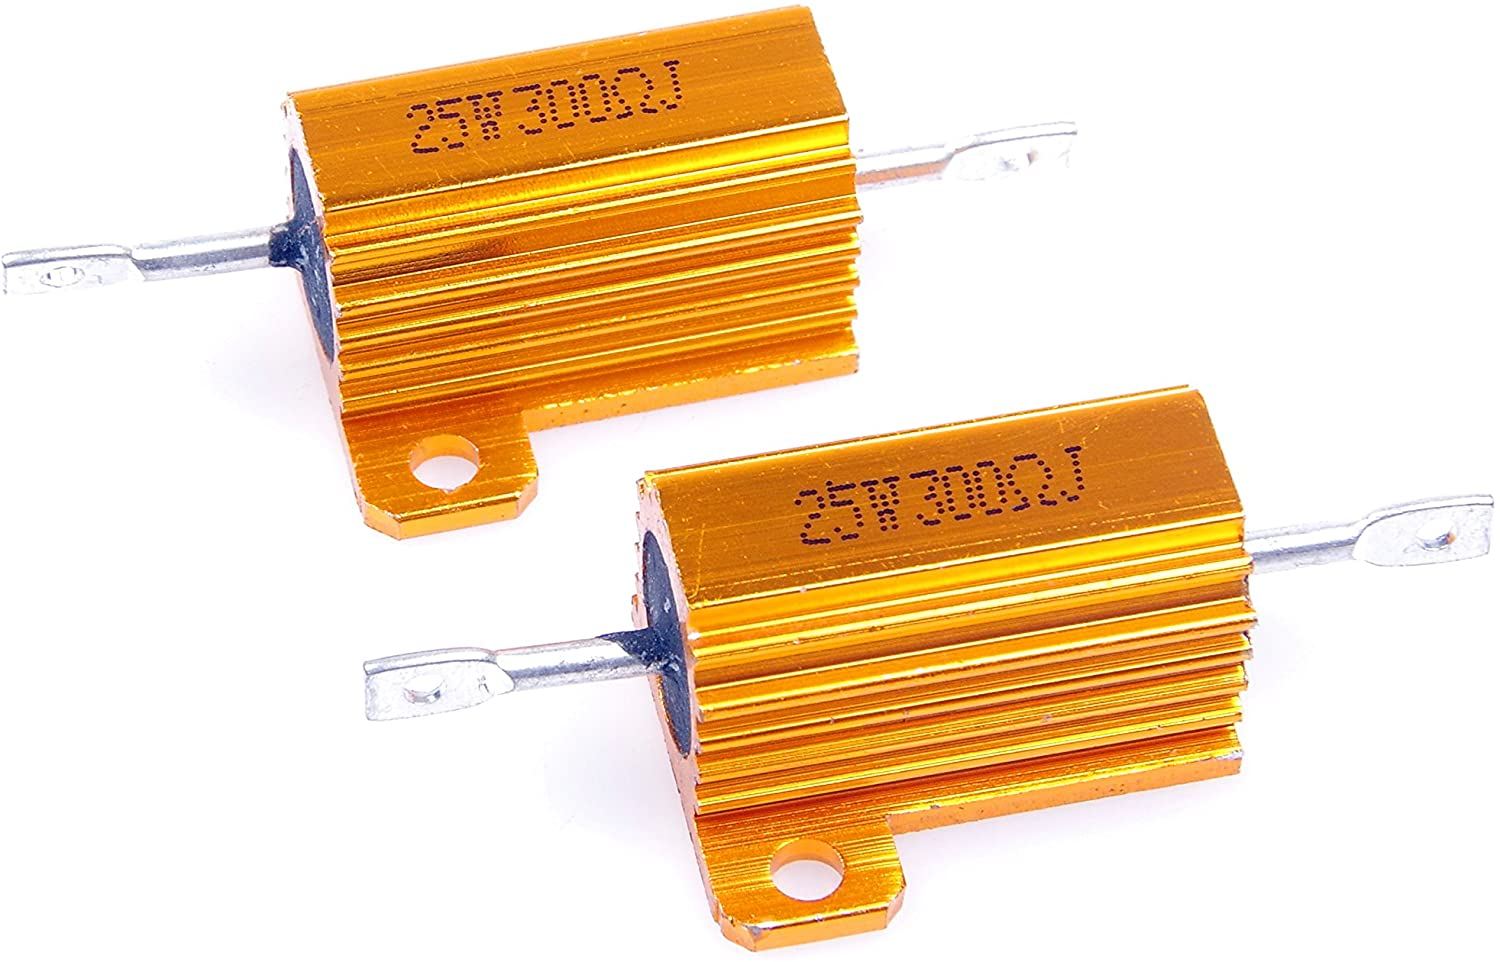 LM YN 25 Watt 300 Ohm 5% Wirewound Resistor Electronic Aluminium Shell Resistor Gold for Inverter LED Lights Frequency Divider Servo Industry Industrial Control 2-Pcs